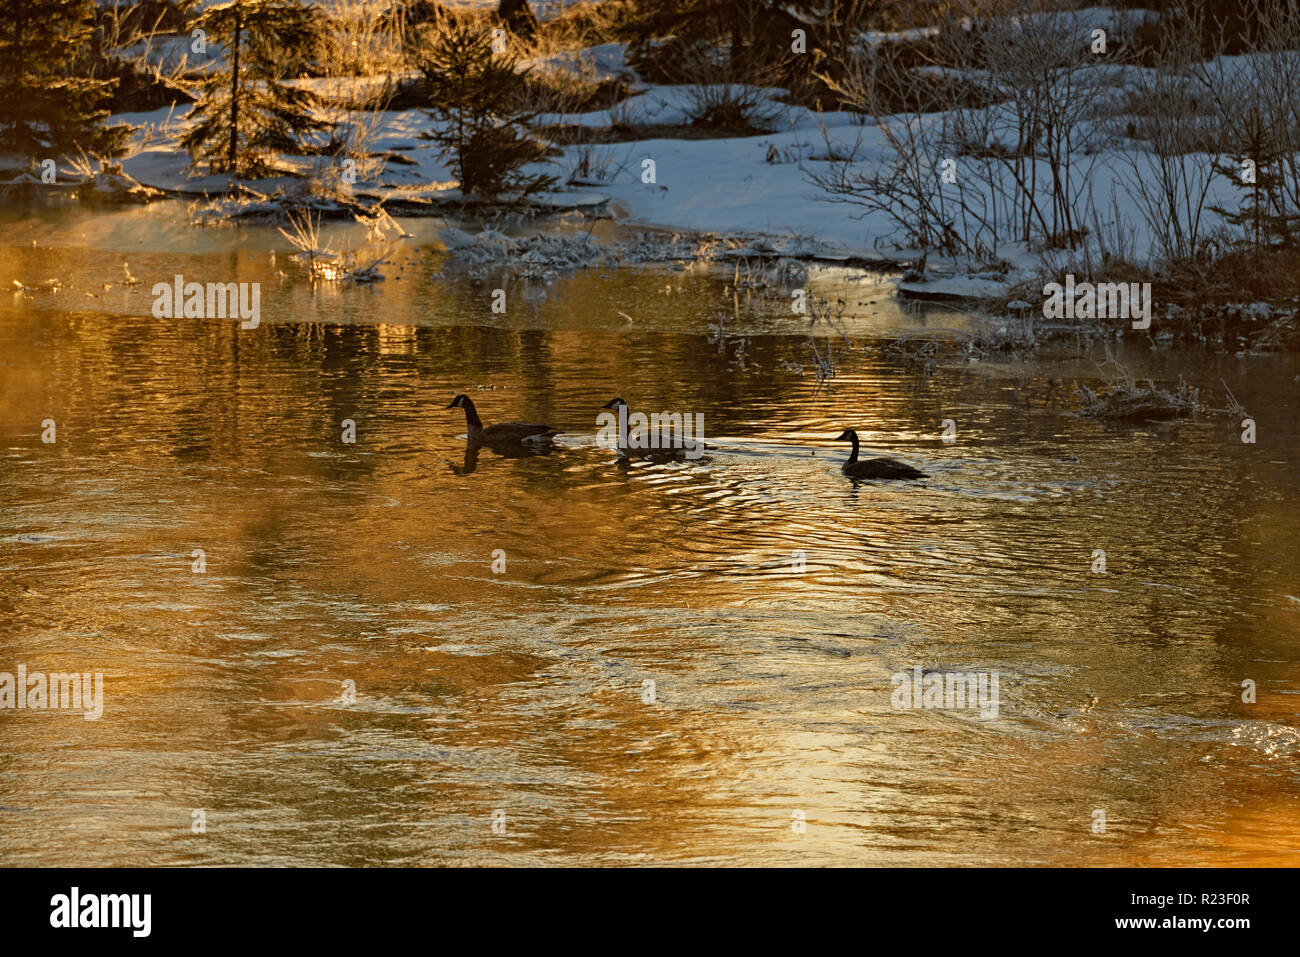 Migratory geese swimming in Junction Creek at dawn, Greater Sudbury, Ontario, Canada - Stock Image